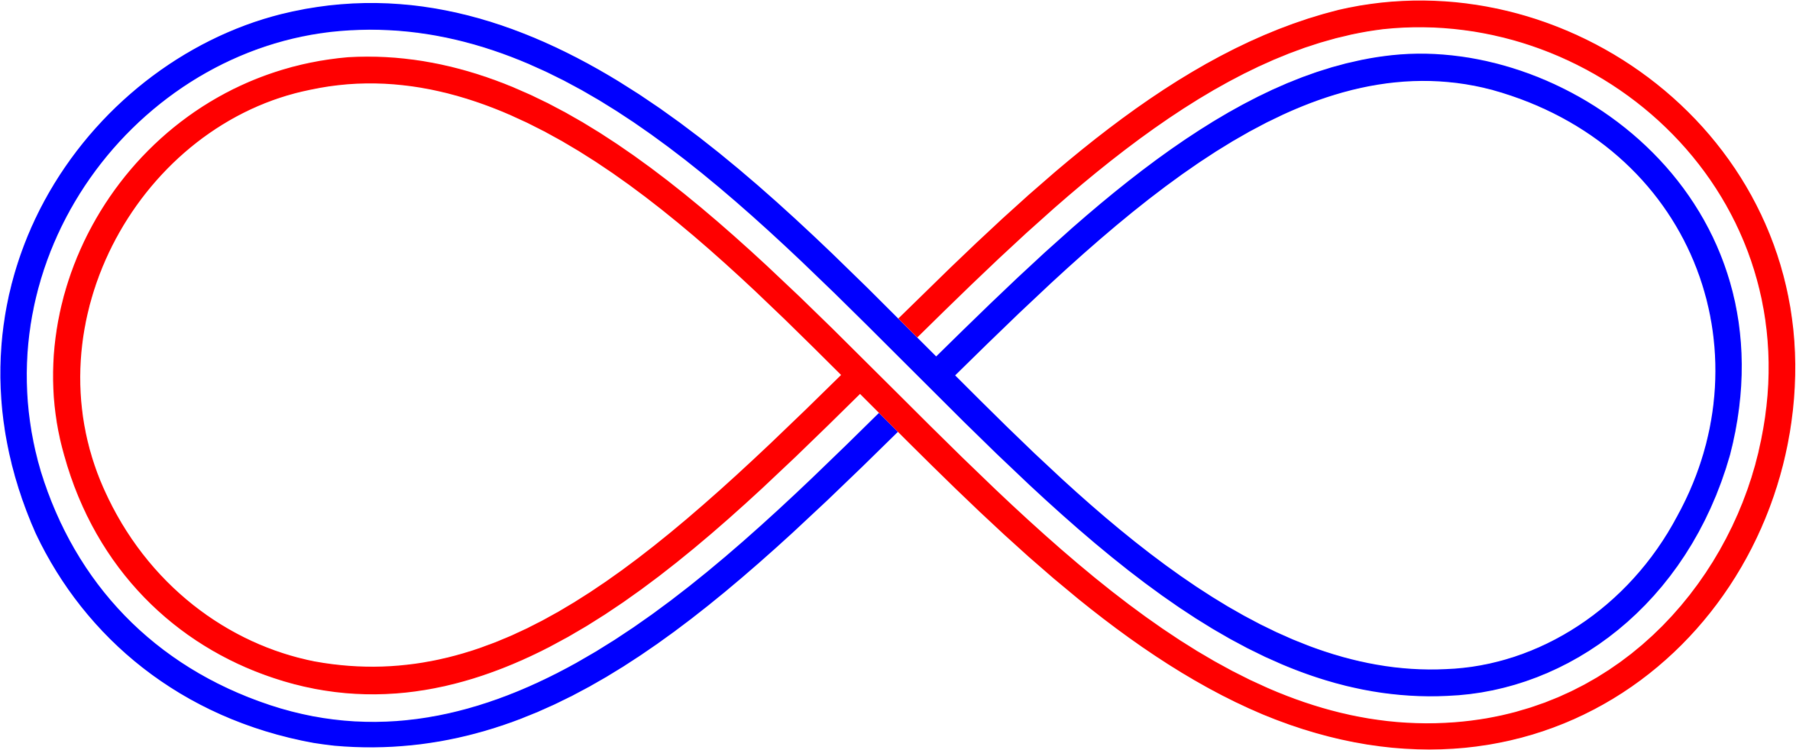 Blue White Red Infinity Symbol Free Commercial Clipart Abstract